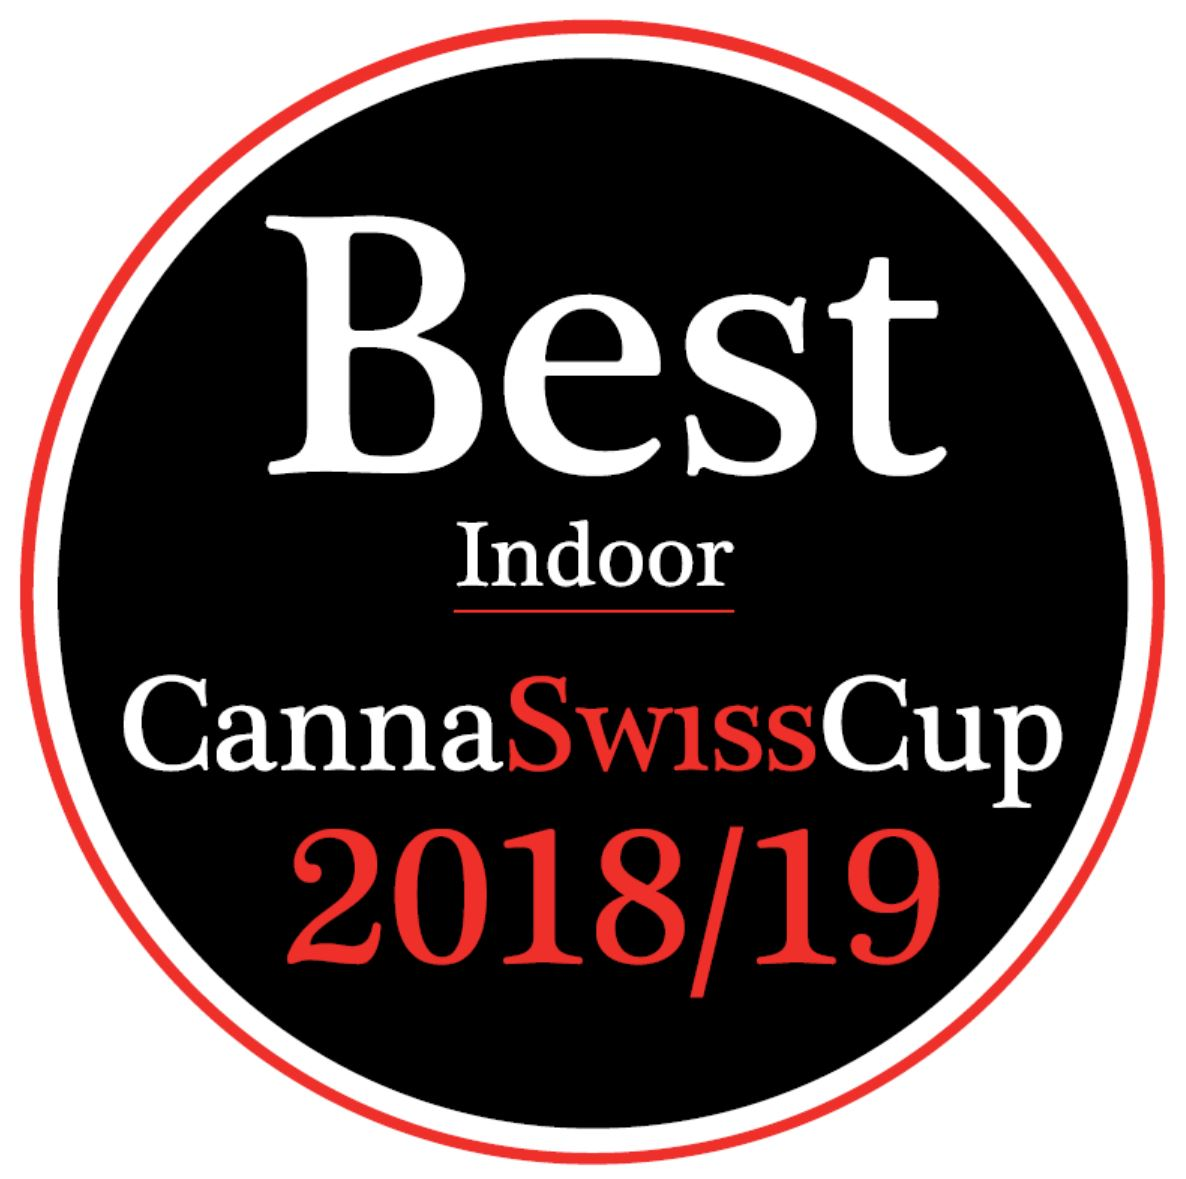 1ère place Indoor à la CannaSwissCup 2018-2019